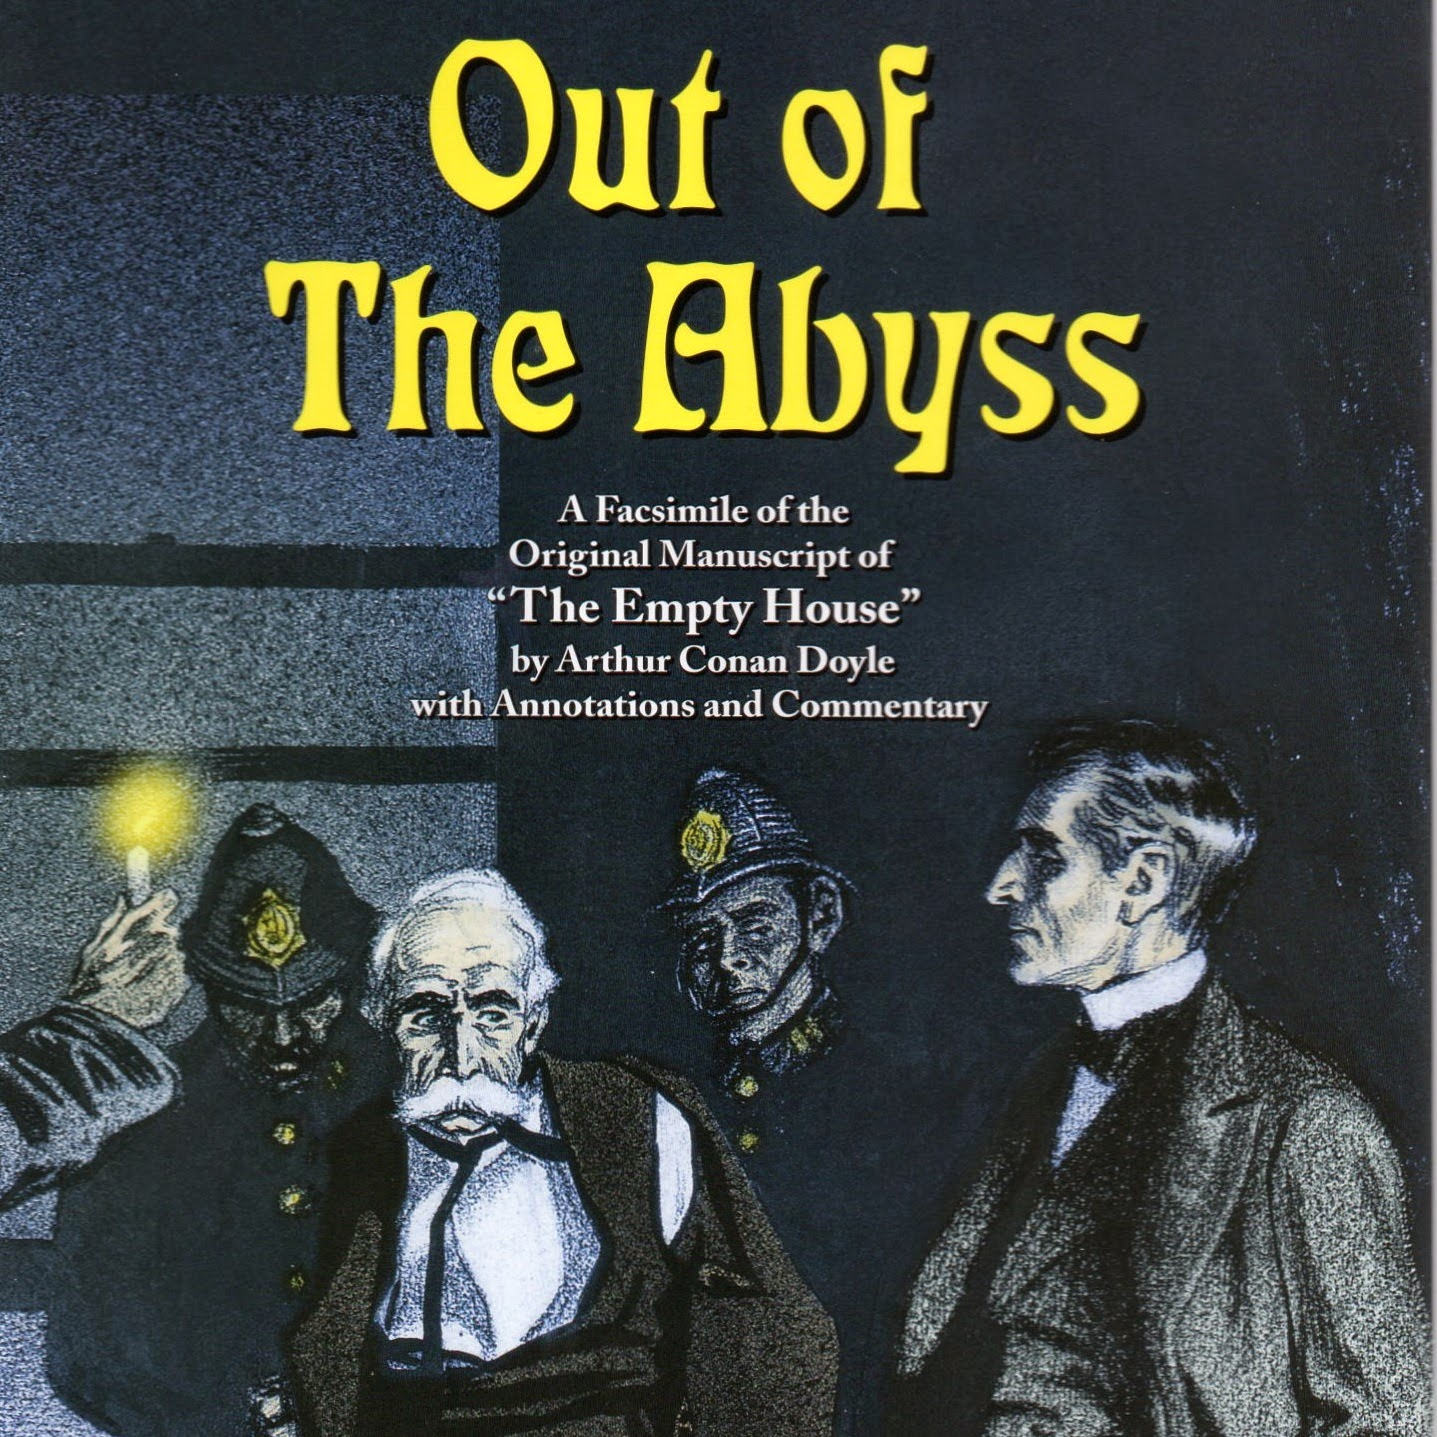 BSI Manuscript Series - Out of the Abyss